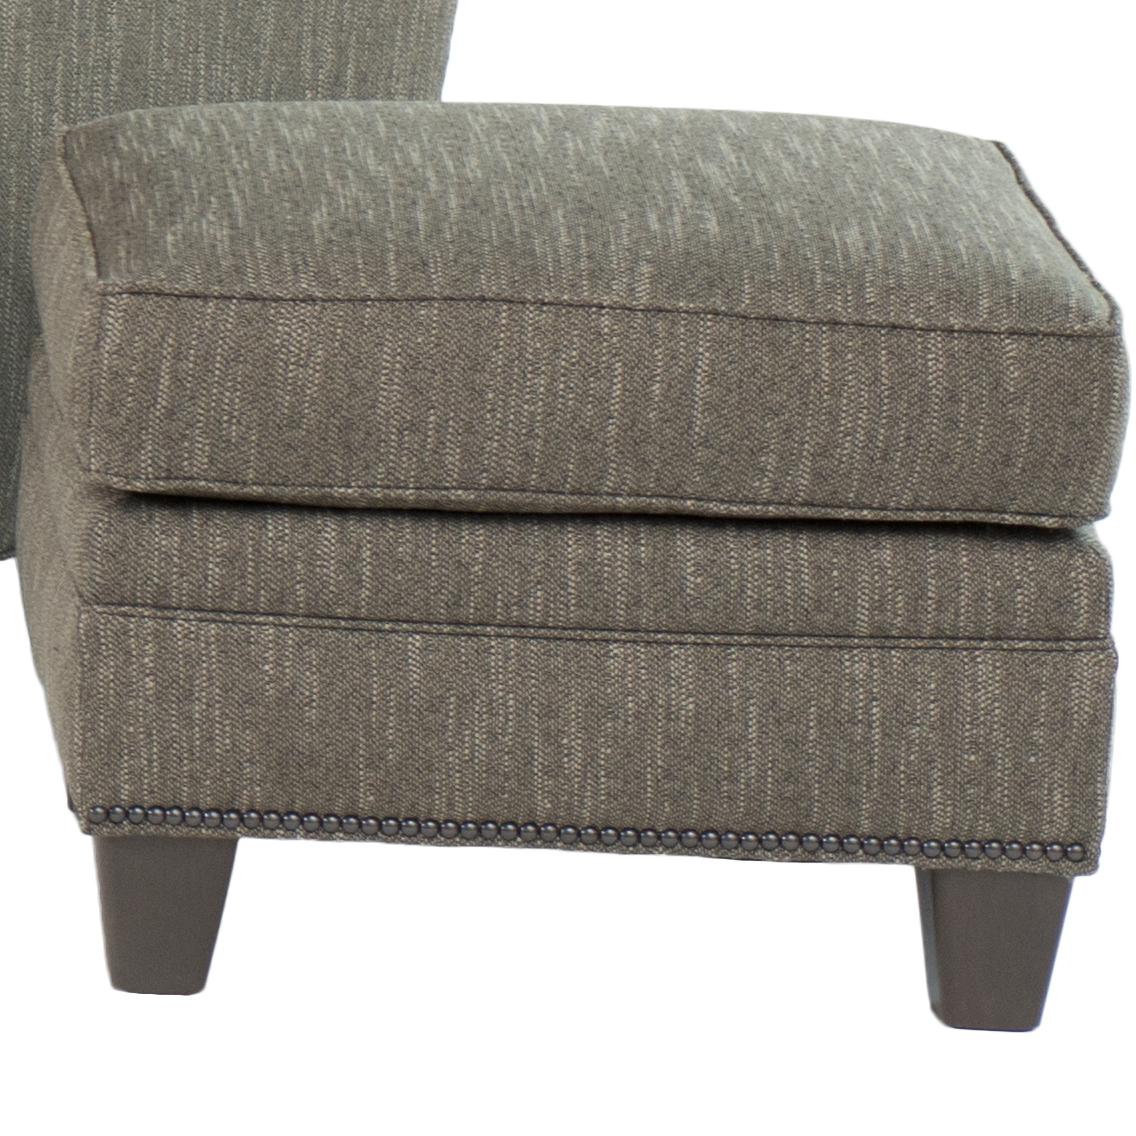 203  Transitional Ottoman by Smith Brothers at Rooms for Less